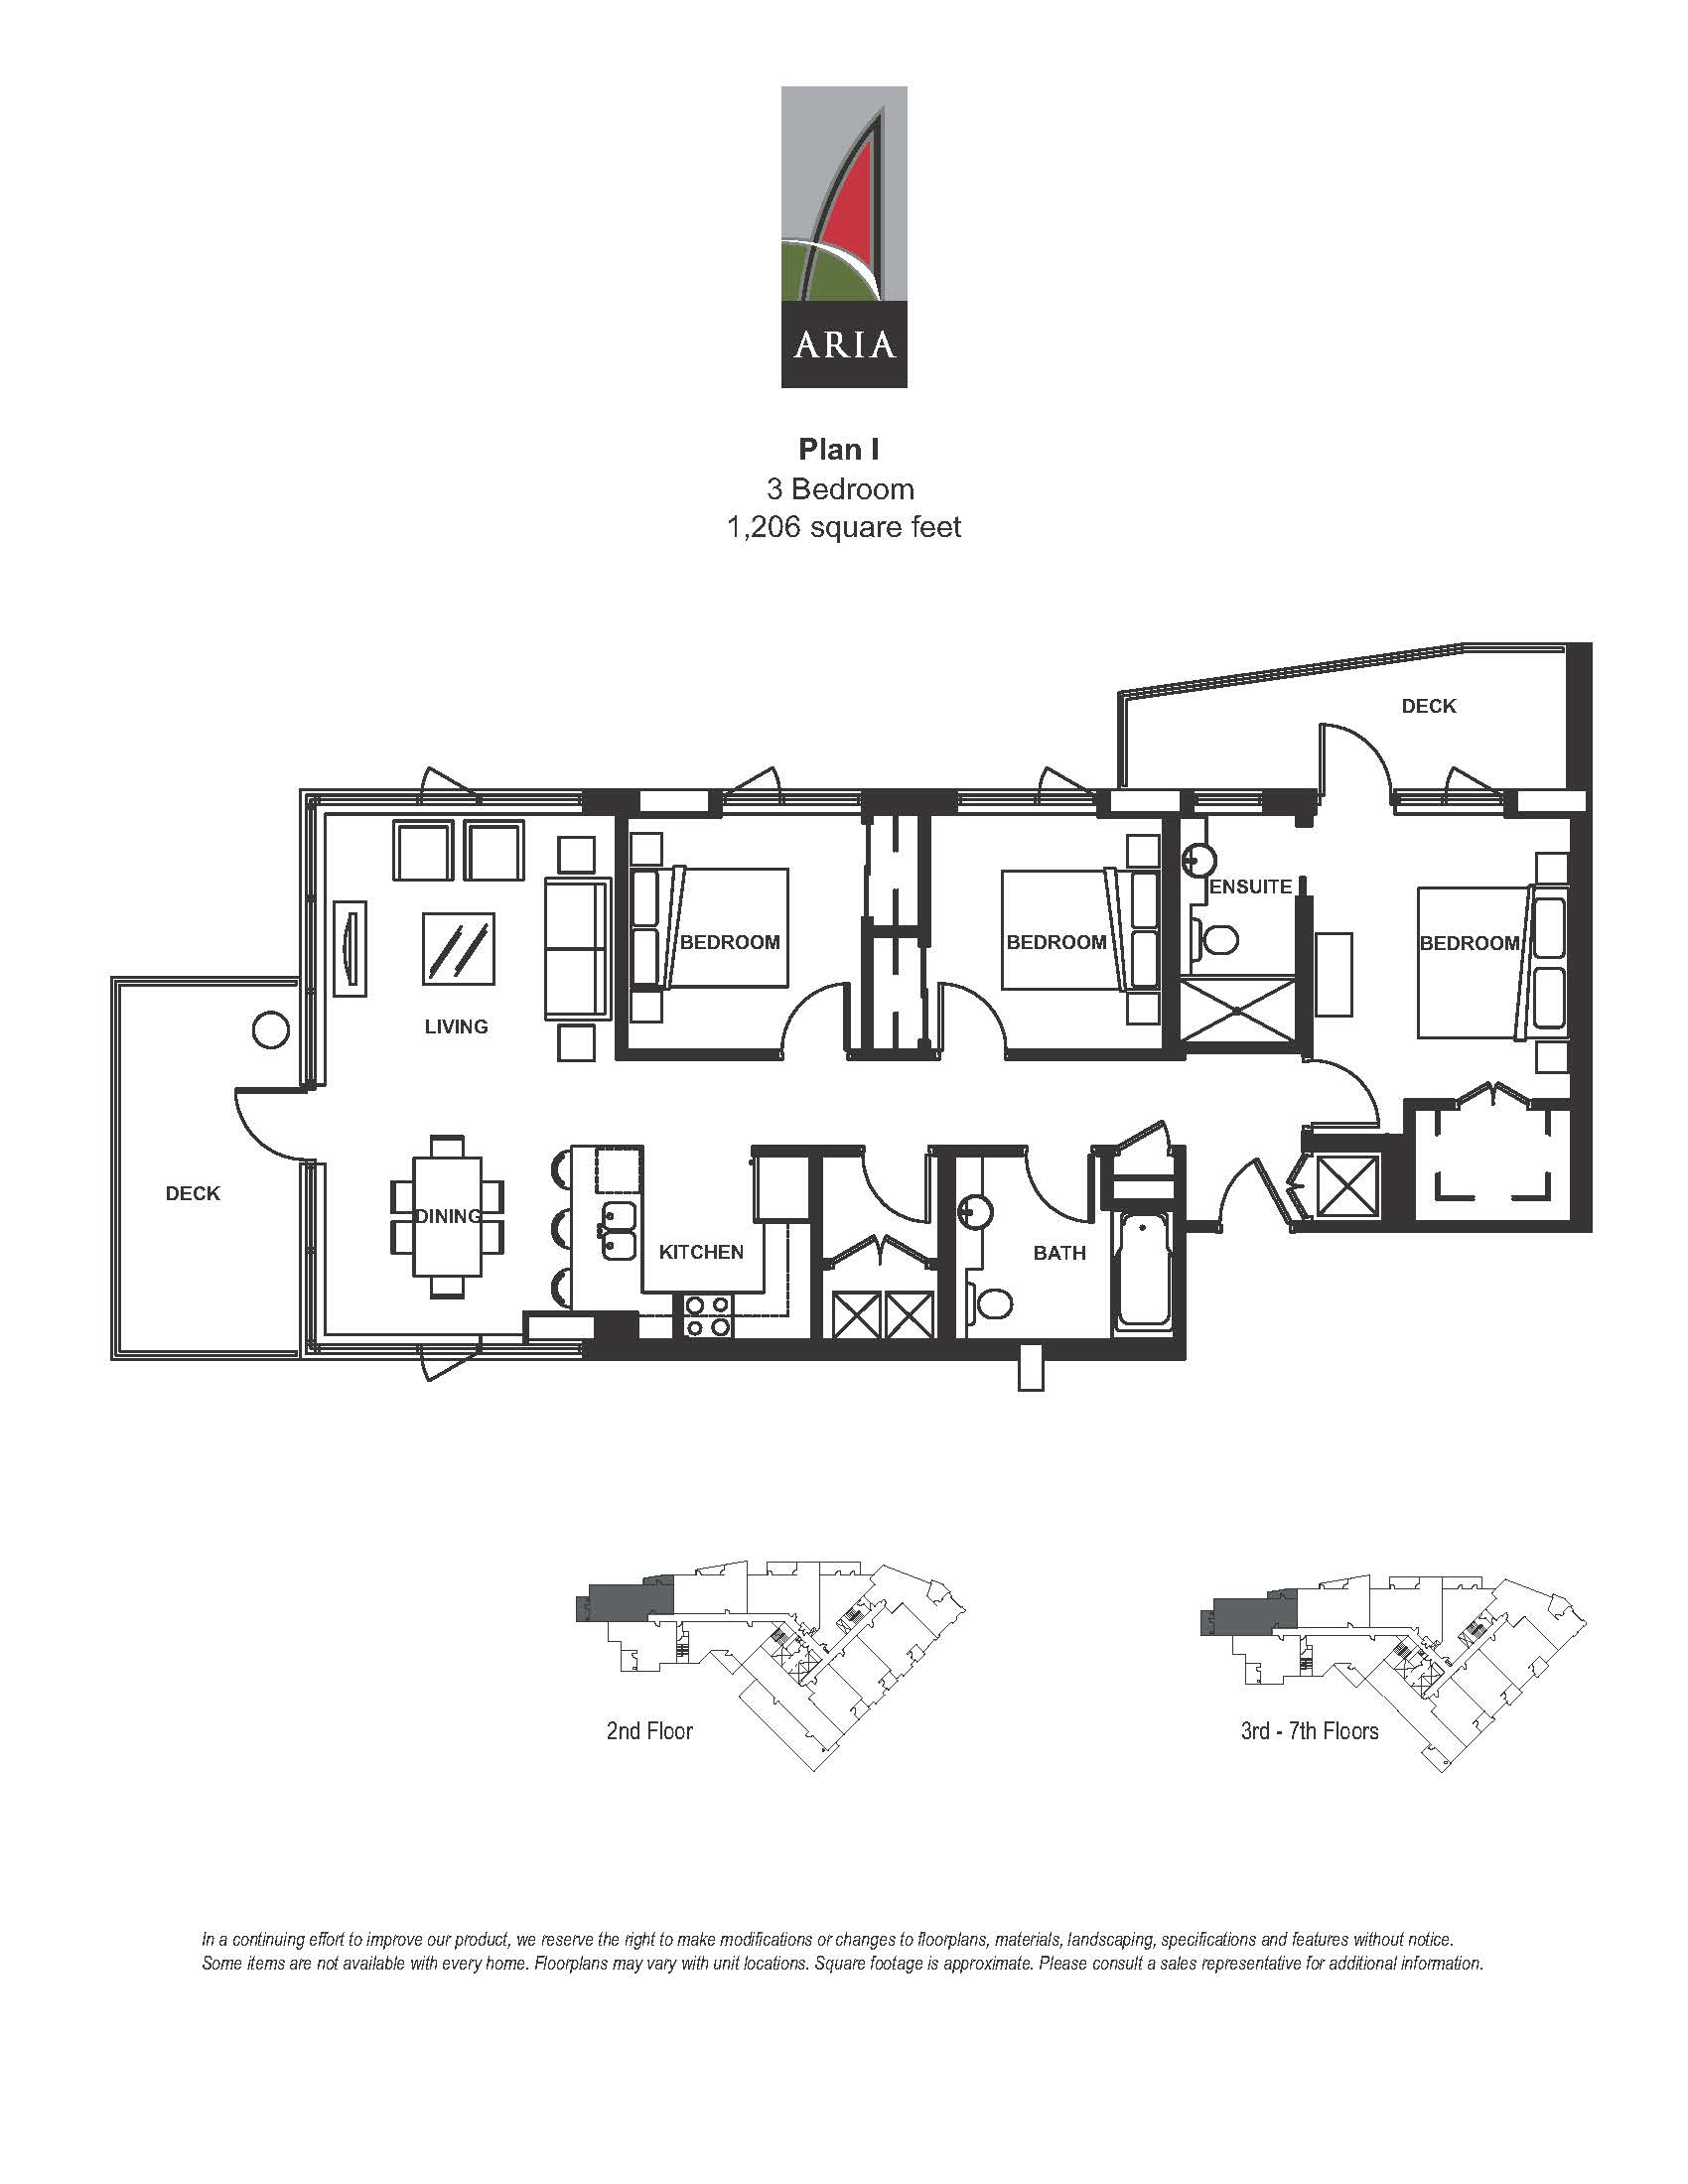 Aria 3 Bedroom – Plan I